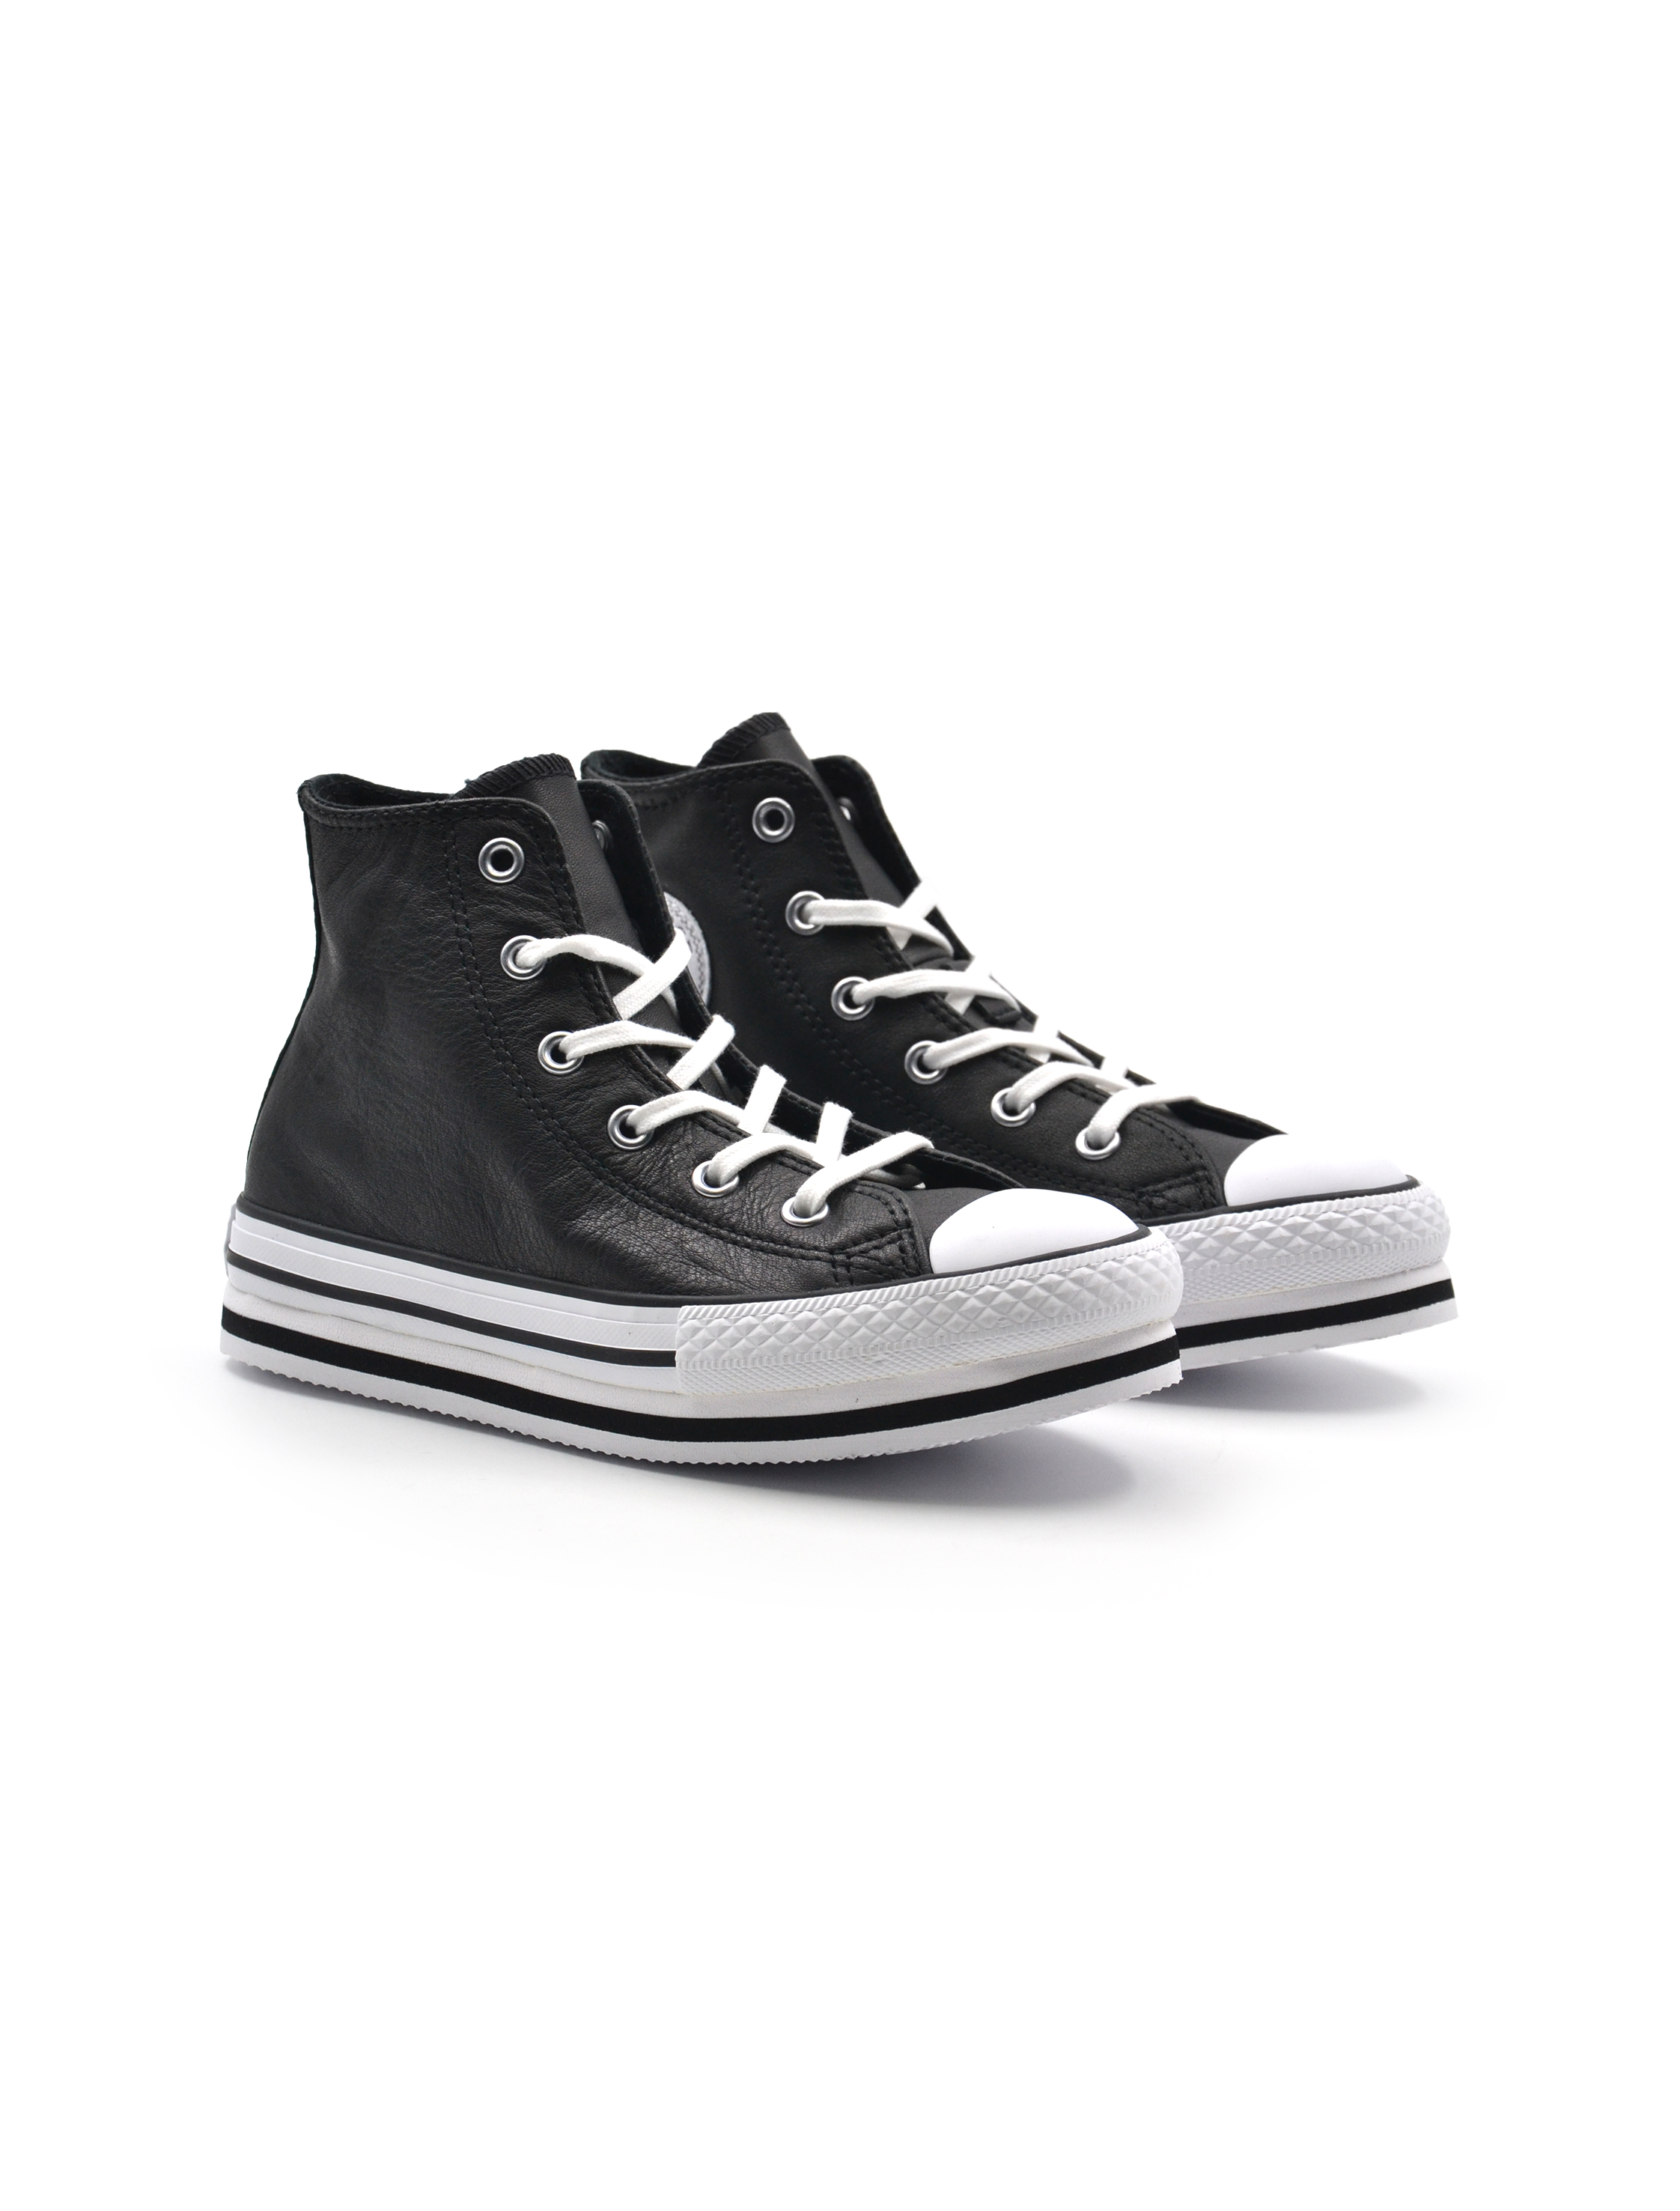 Converse chuck taylor all star platform, Sneakers, colore